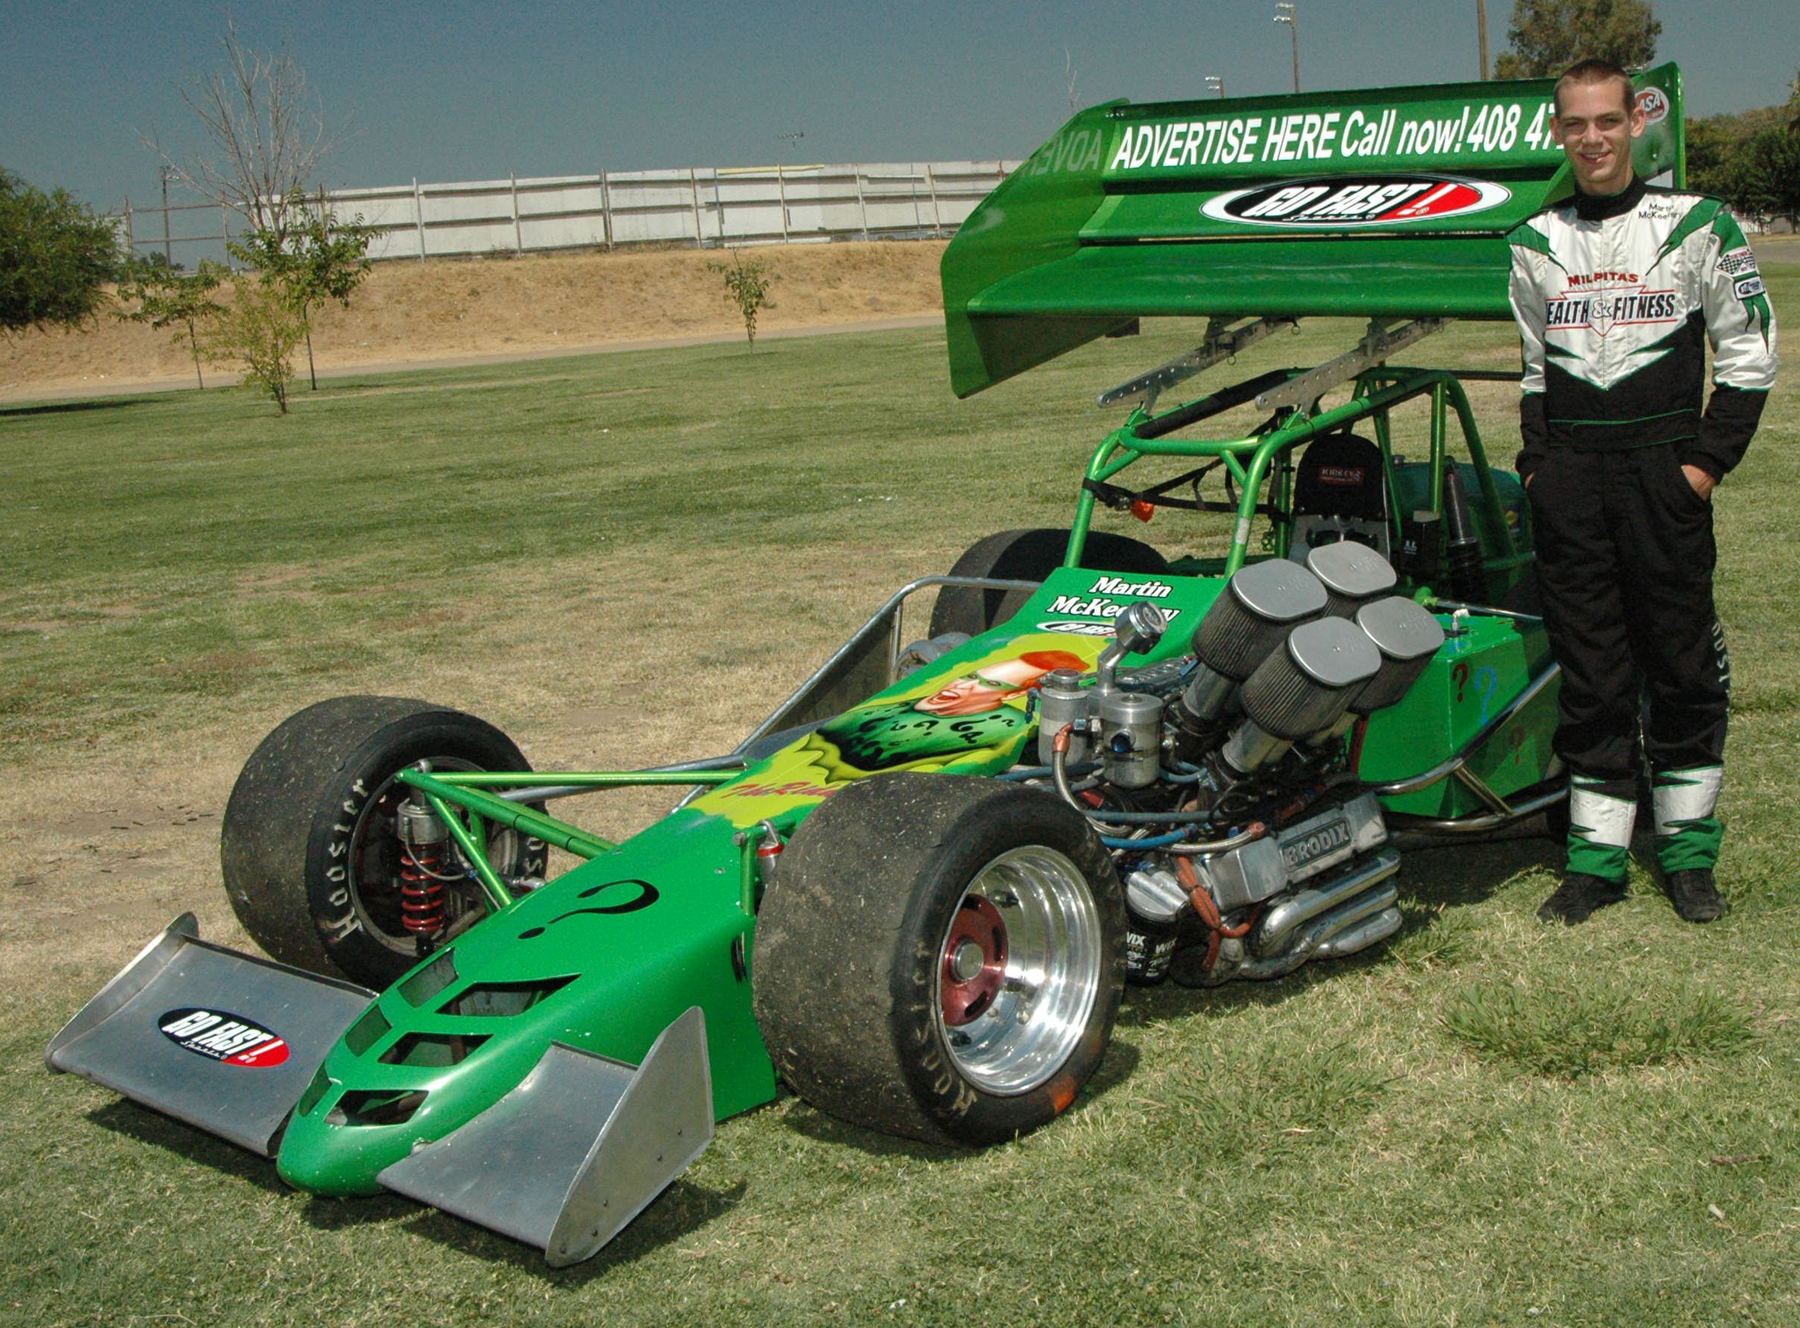 Modified Race Cars For Sale Supermodified car for sale in